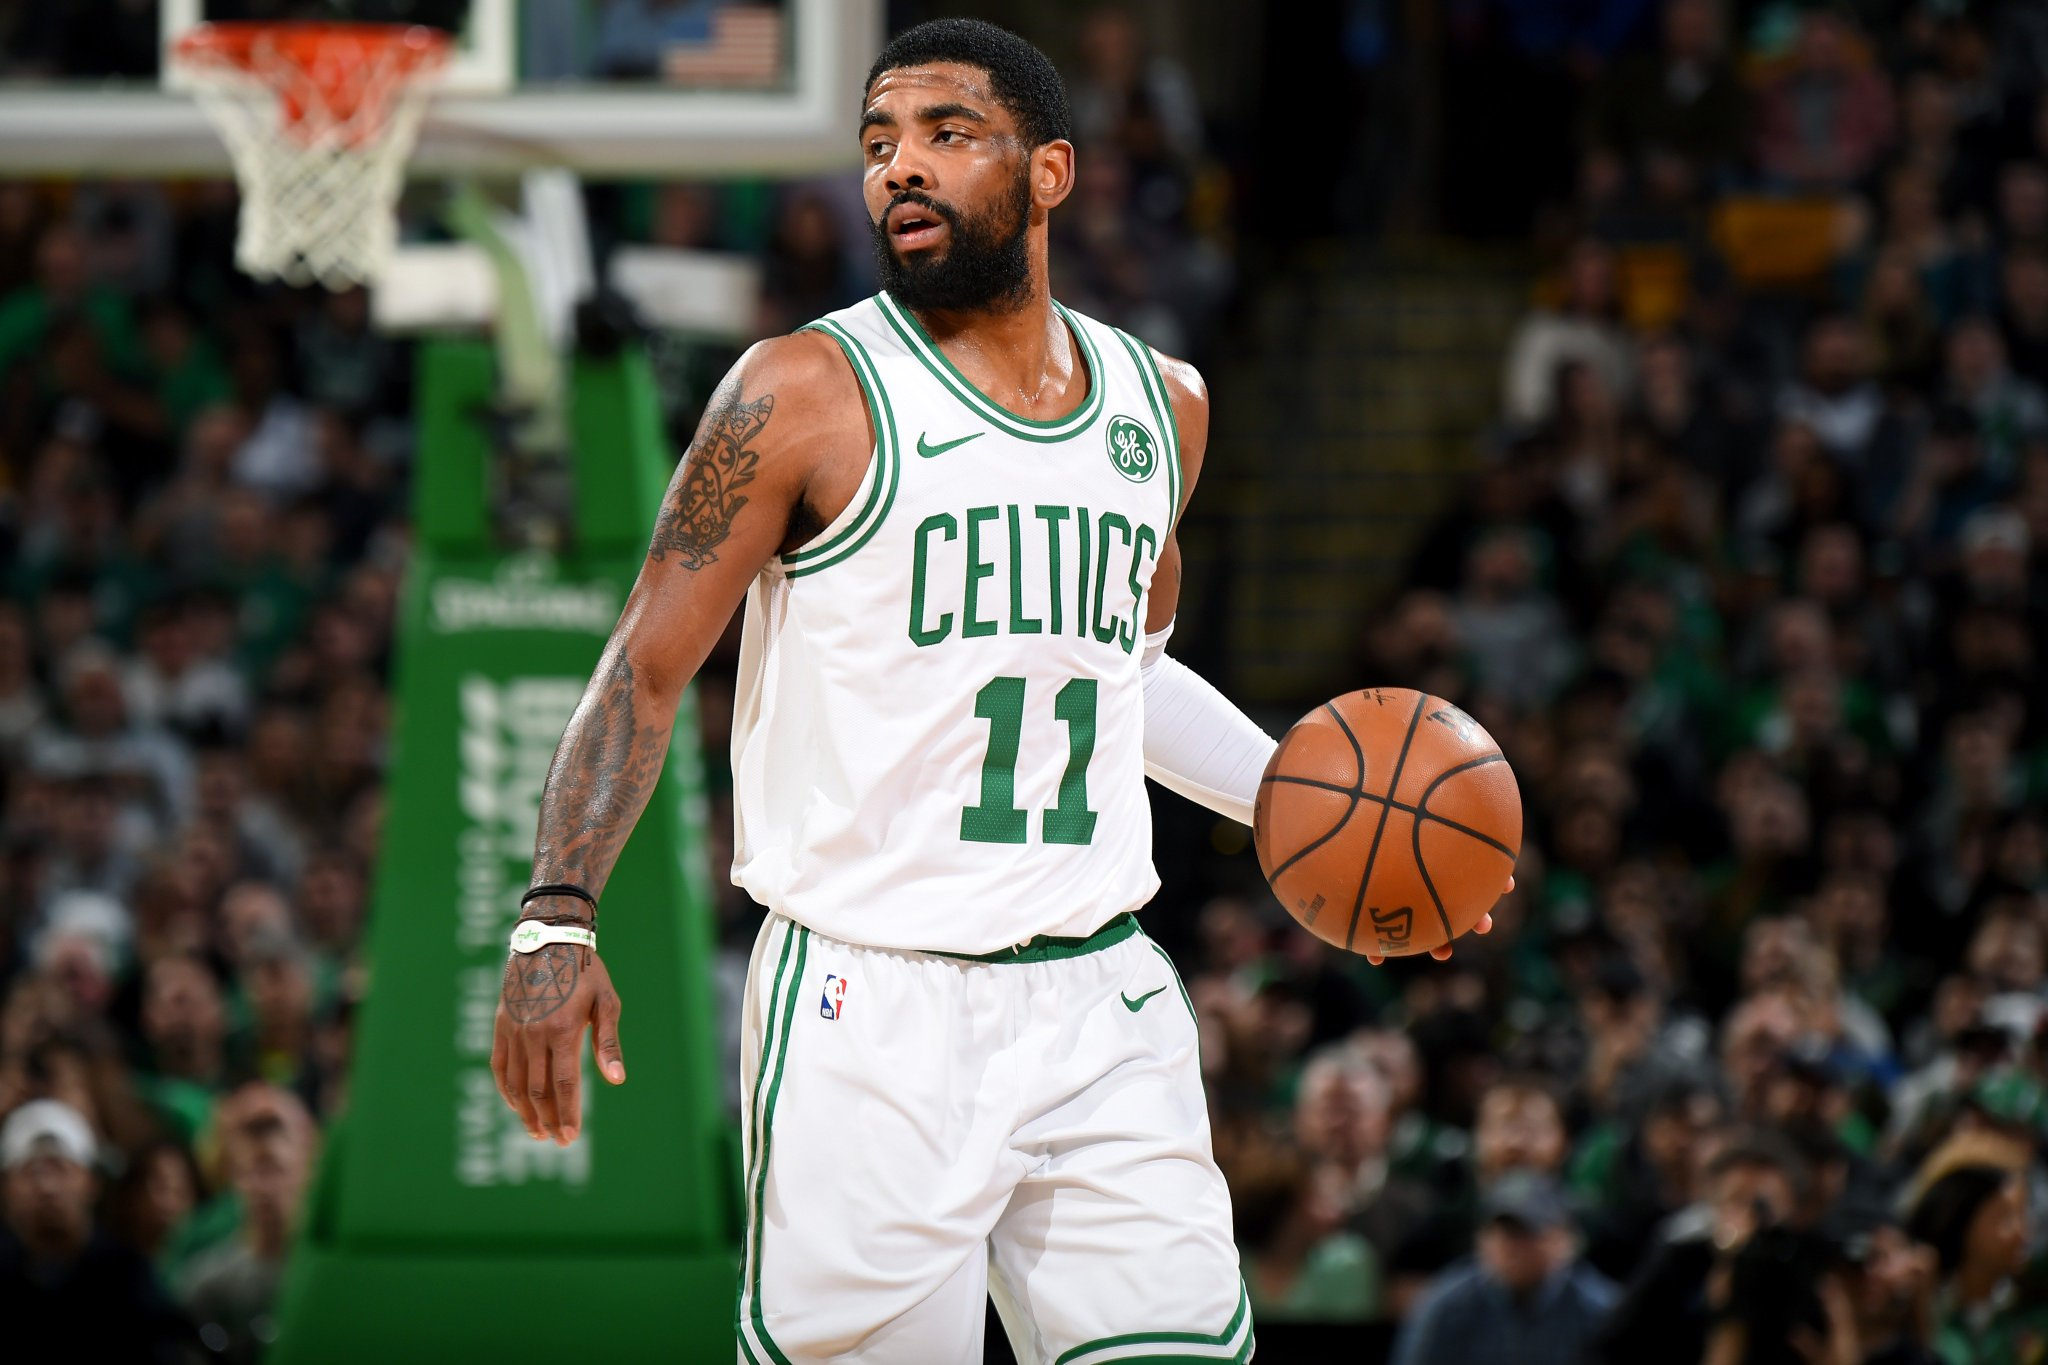 #TripleDoubleAlert  Kyrie Irving notches his 2nd career triple-double with 30 PTS, 11 AST, 10 REB! #CUsRise https://t.co/a0GSezpy38